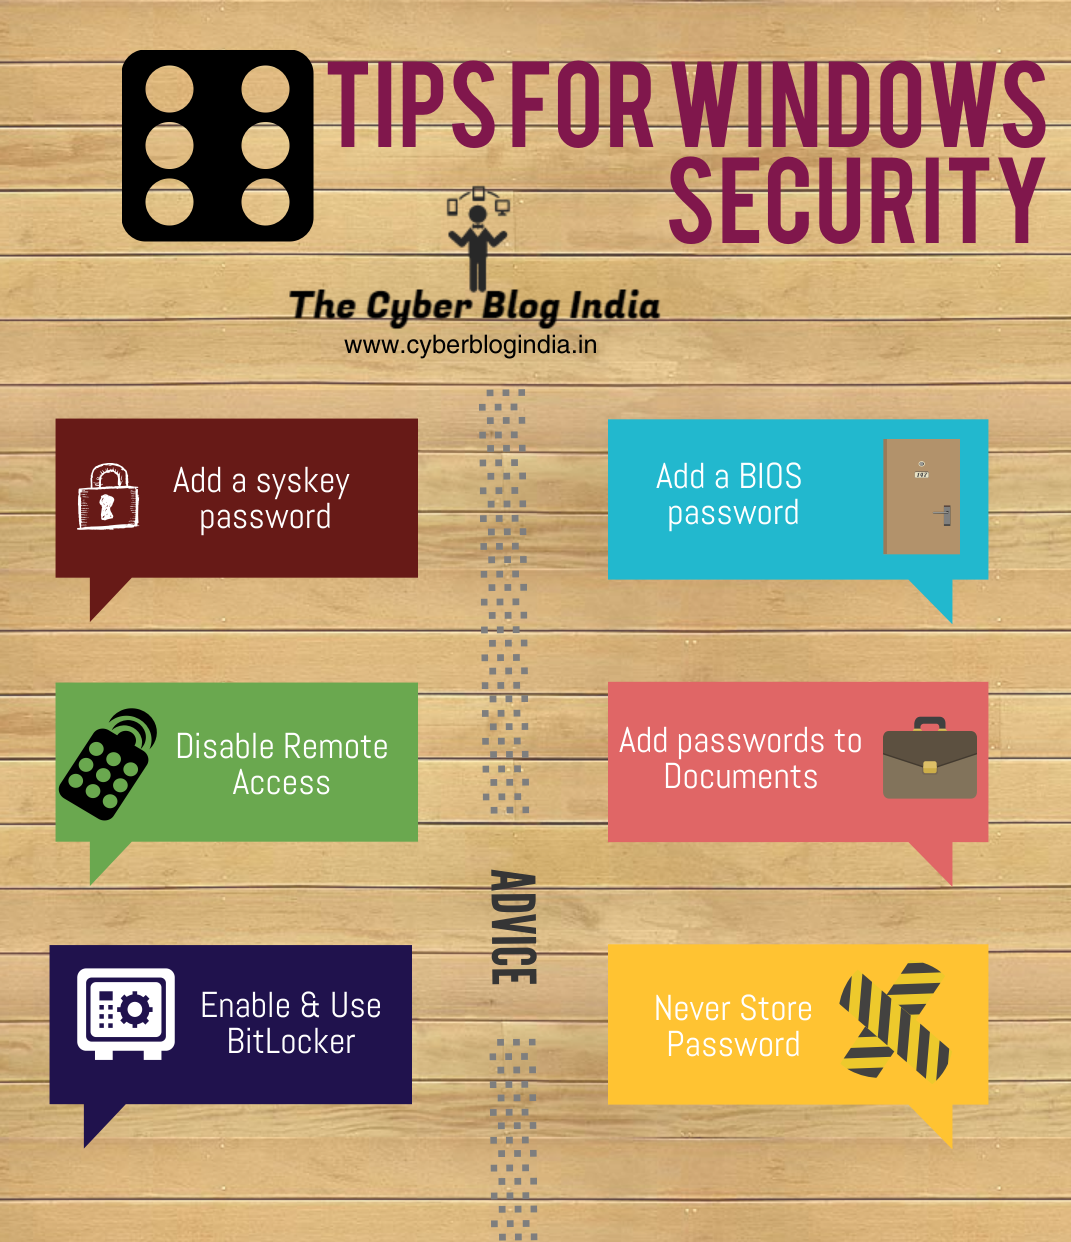 Six tips for Windows Security